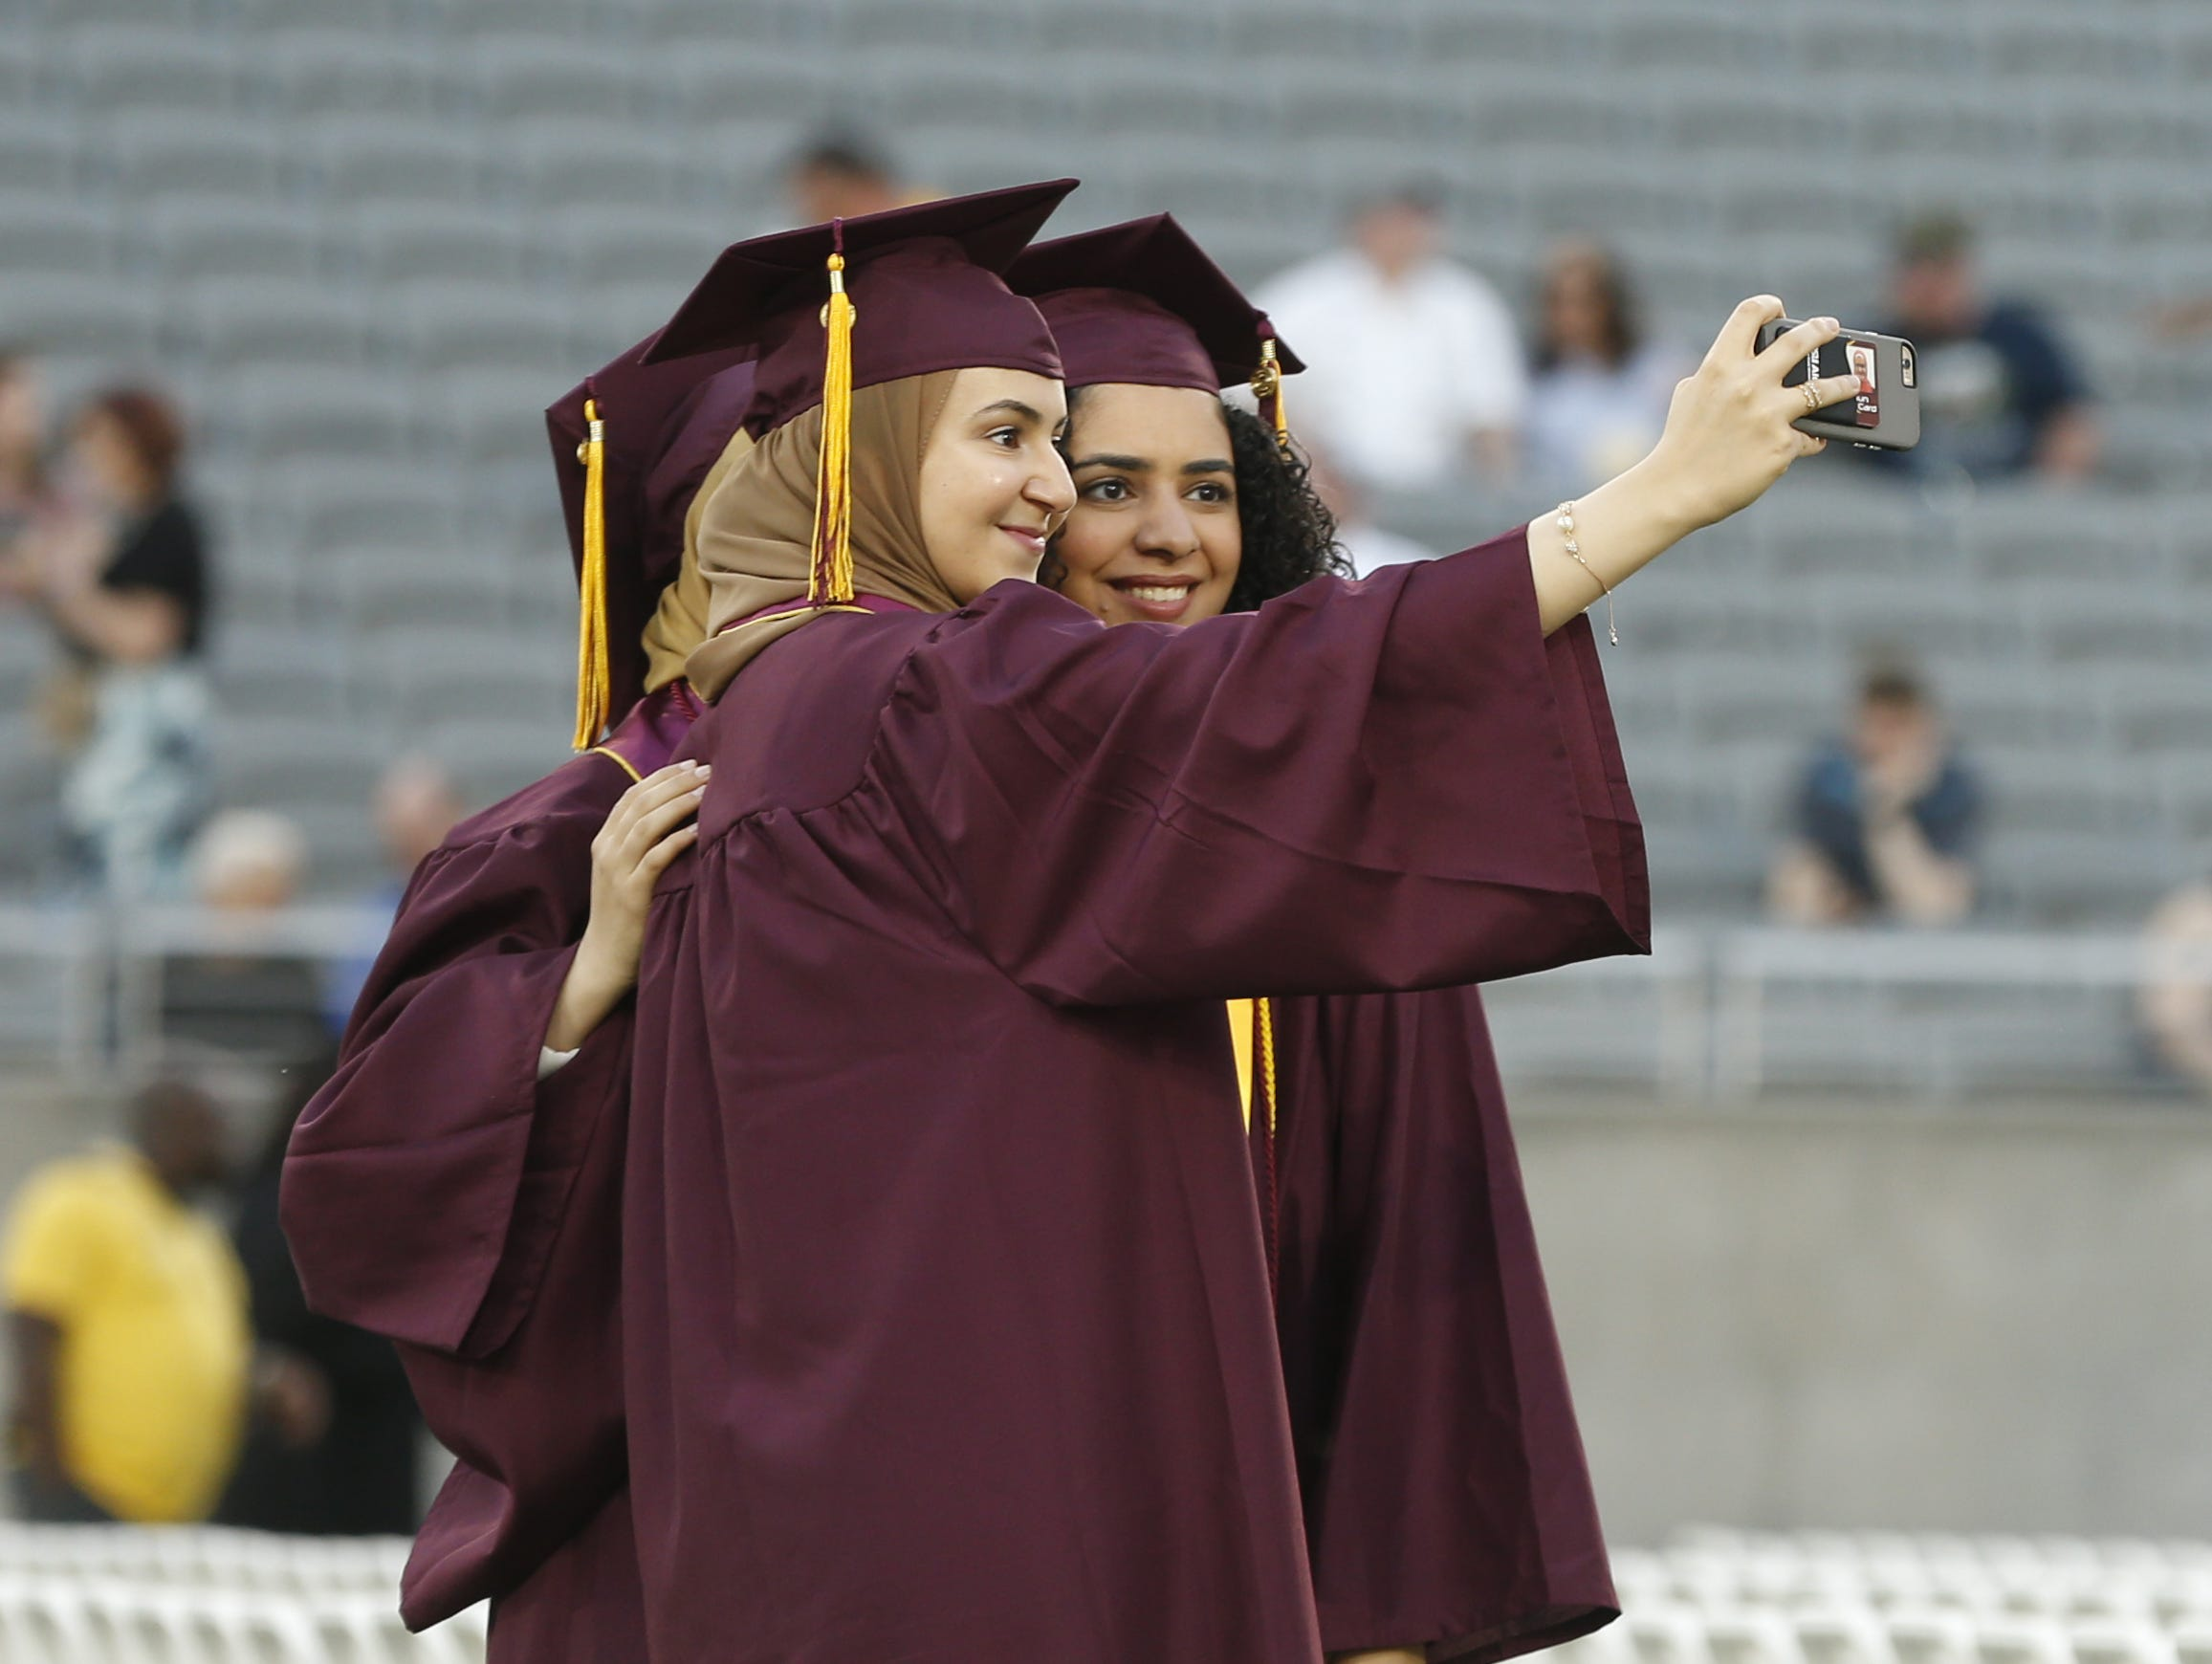 ASU graduates' Mayar Allam (front), Maria Hanna (R) and Israa Abdelaziz (back) pose for a picture during ASU's Undergraduate Commencement at Sun Devil Stadium in Tempe, Ariz. on May 6, 2019.